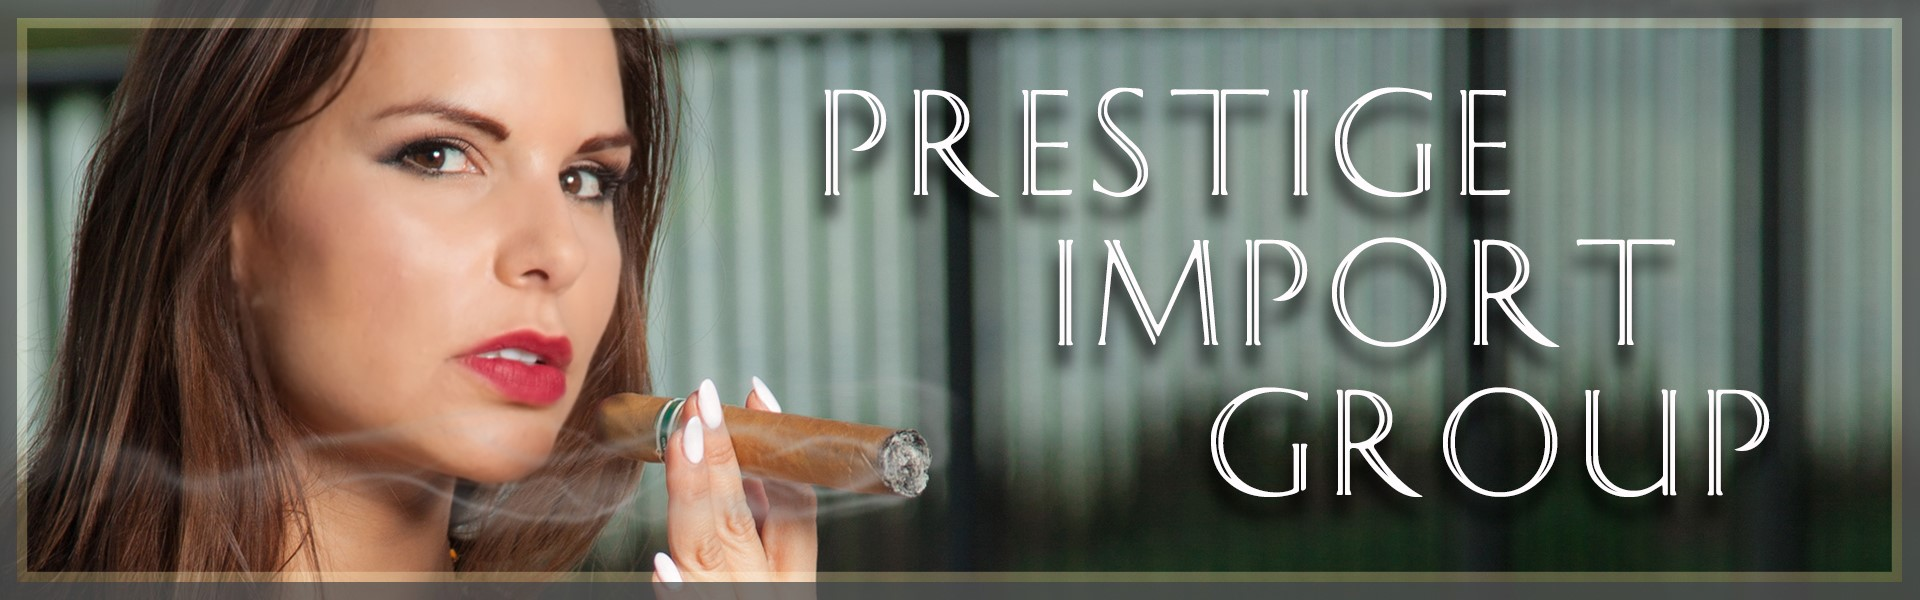 Supplier & Distributor of Wholesale Humidors & Cigar Accessories